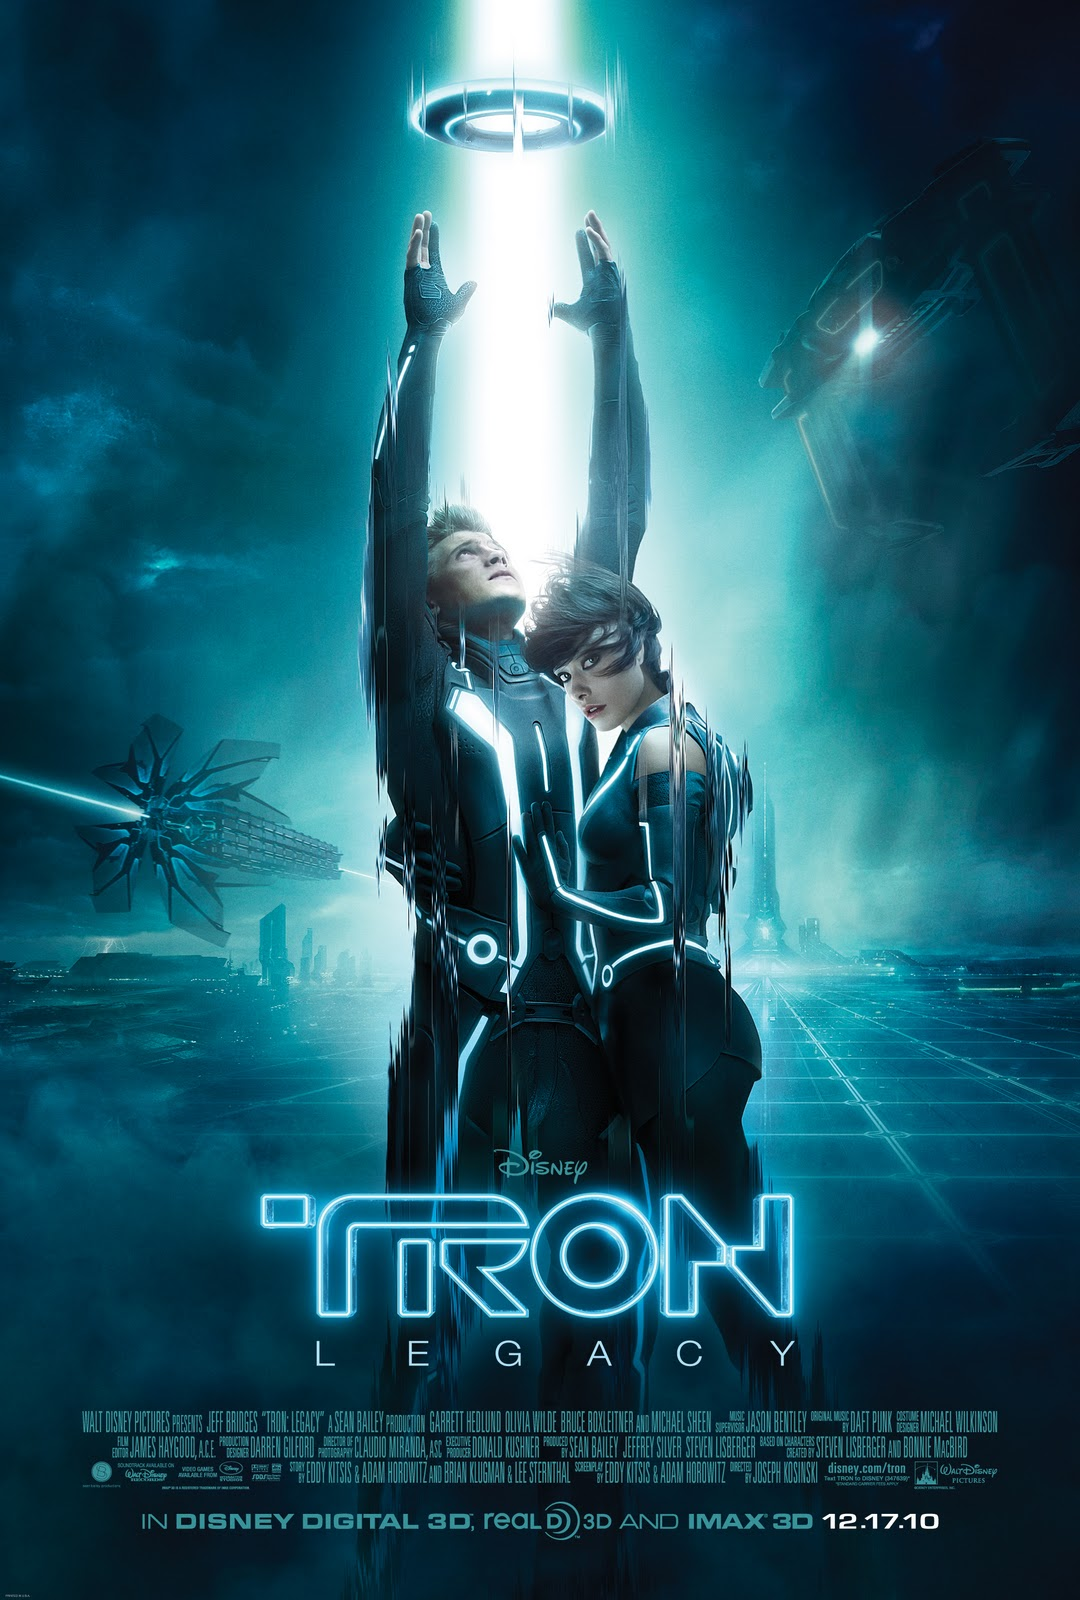 tron legacy final poster hi res 01 Teen dude hard ass fucks his friend. Sexy glamour teen showing off her sweet ...